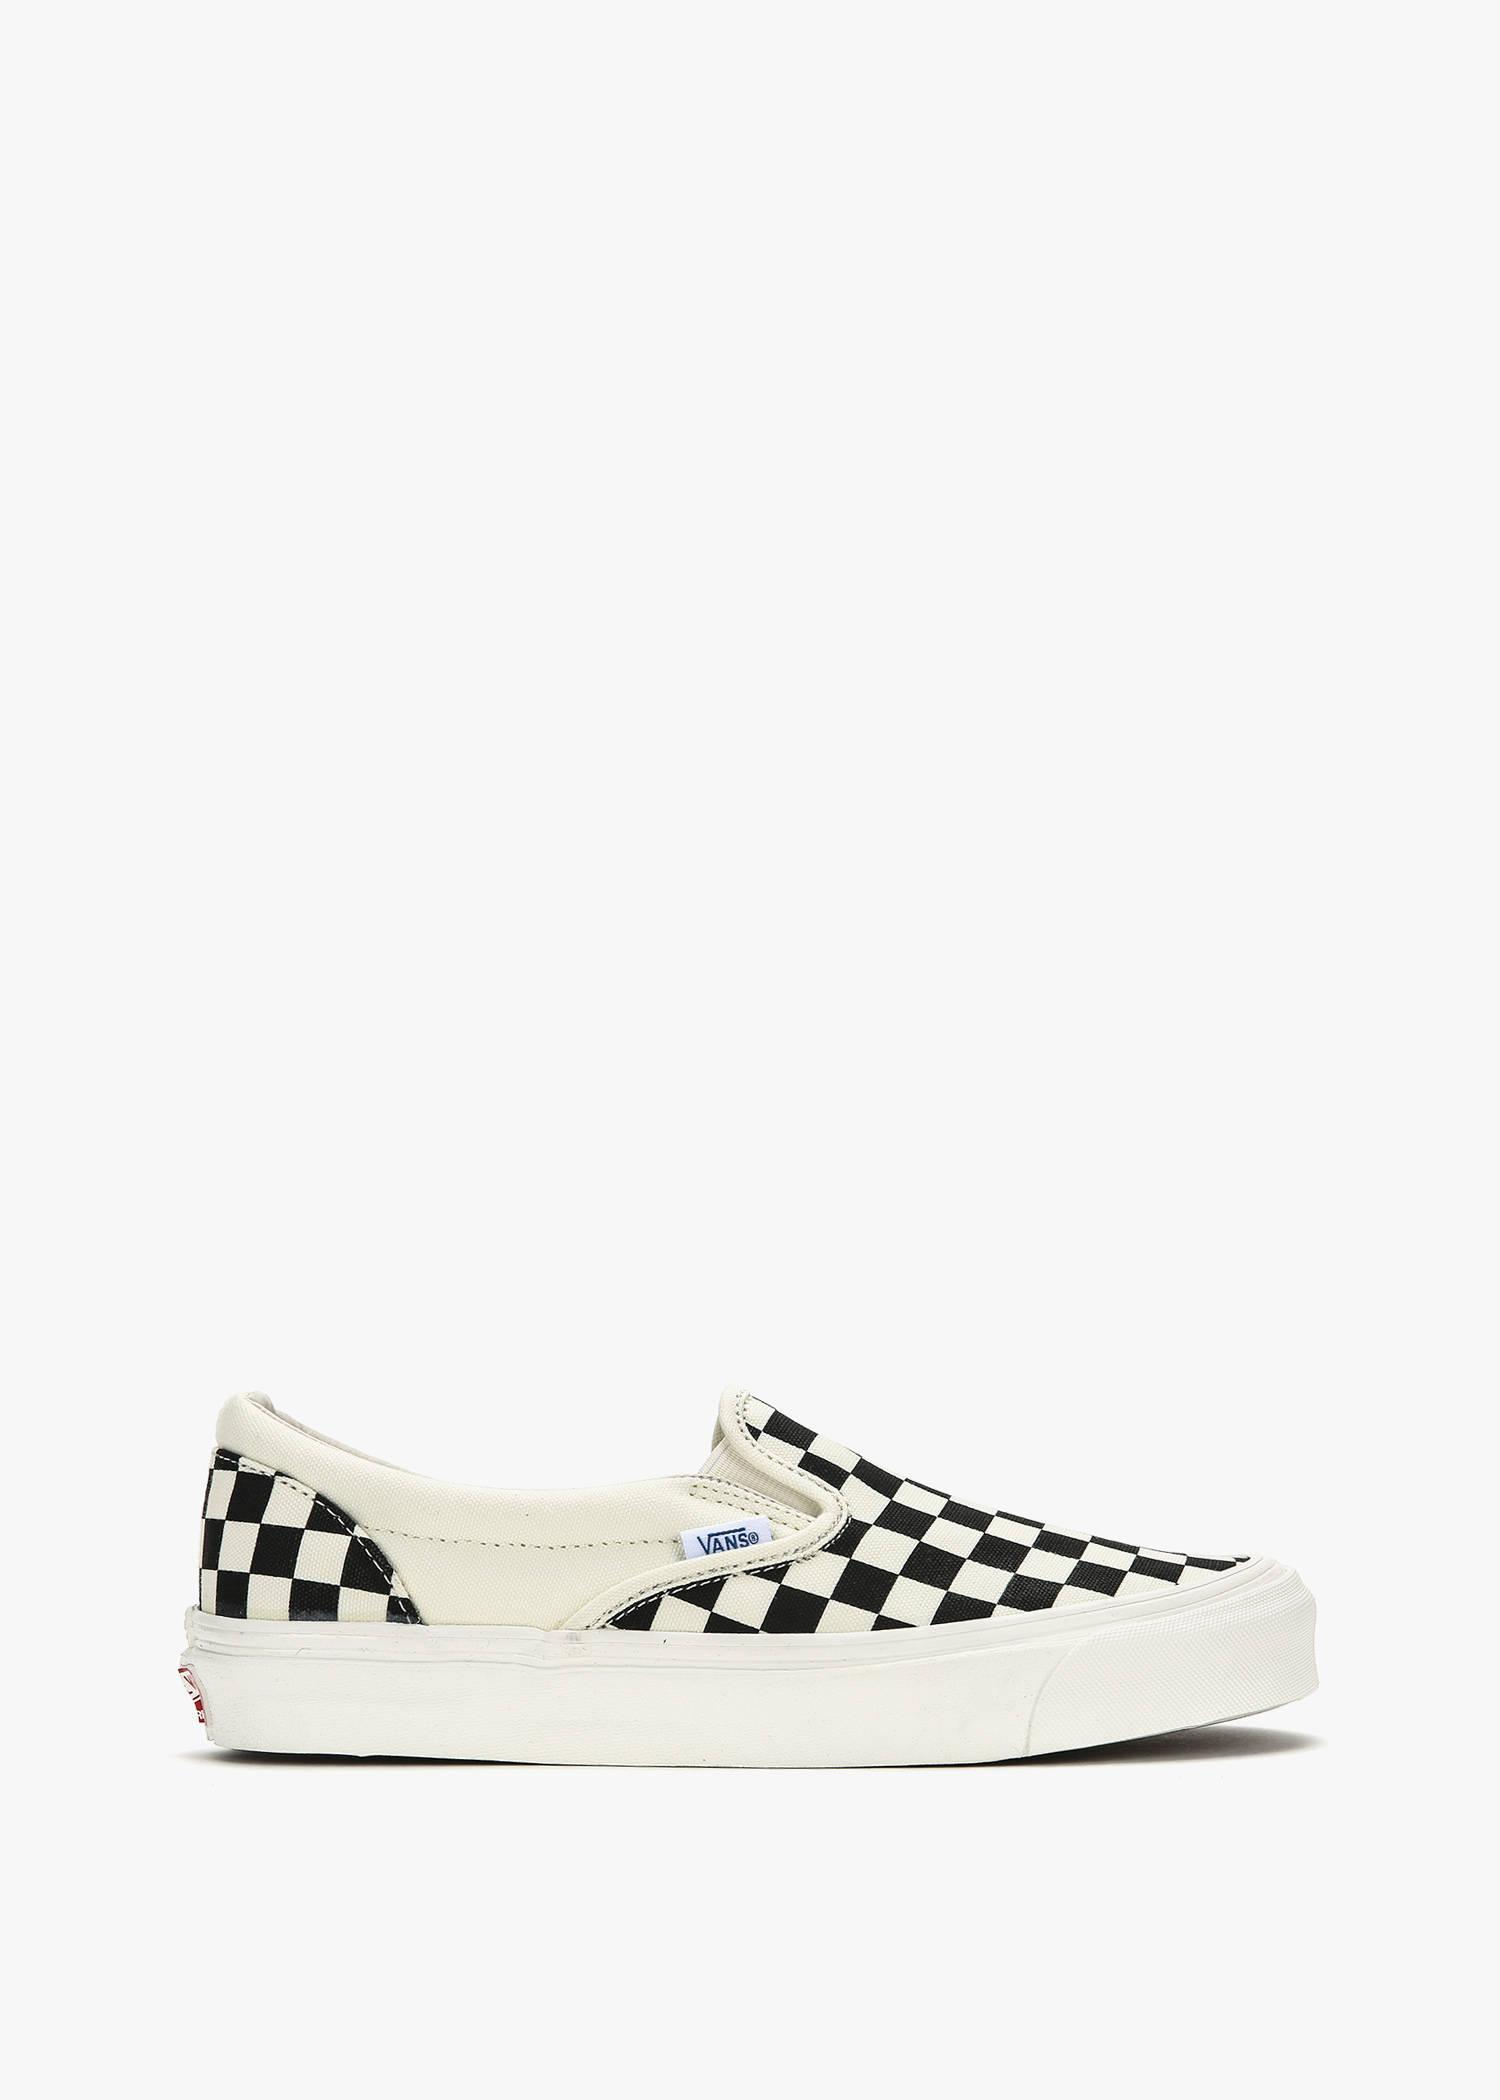 Vans Off-white And Black Checkerboard Og Classic Slip-on Sneakers In Blk/wht Chc